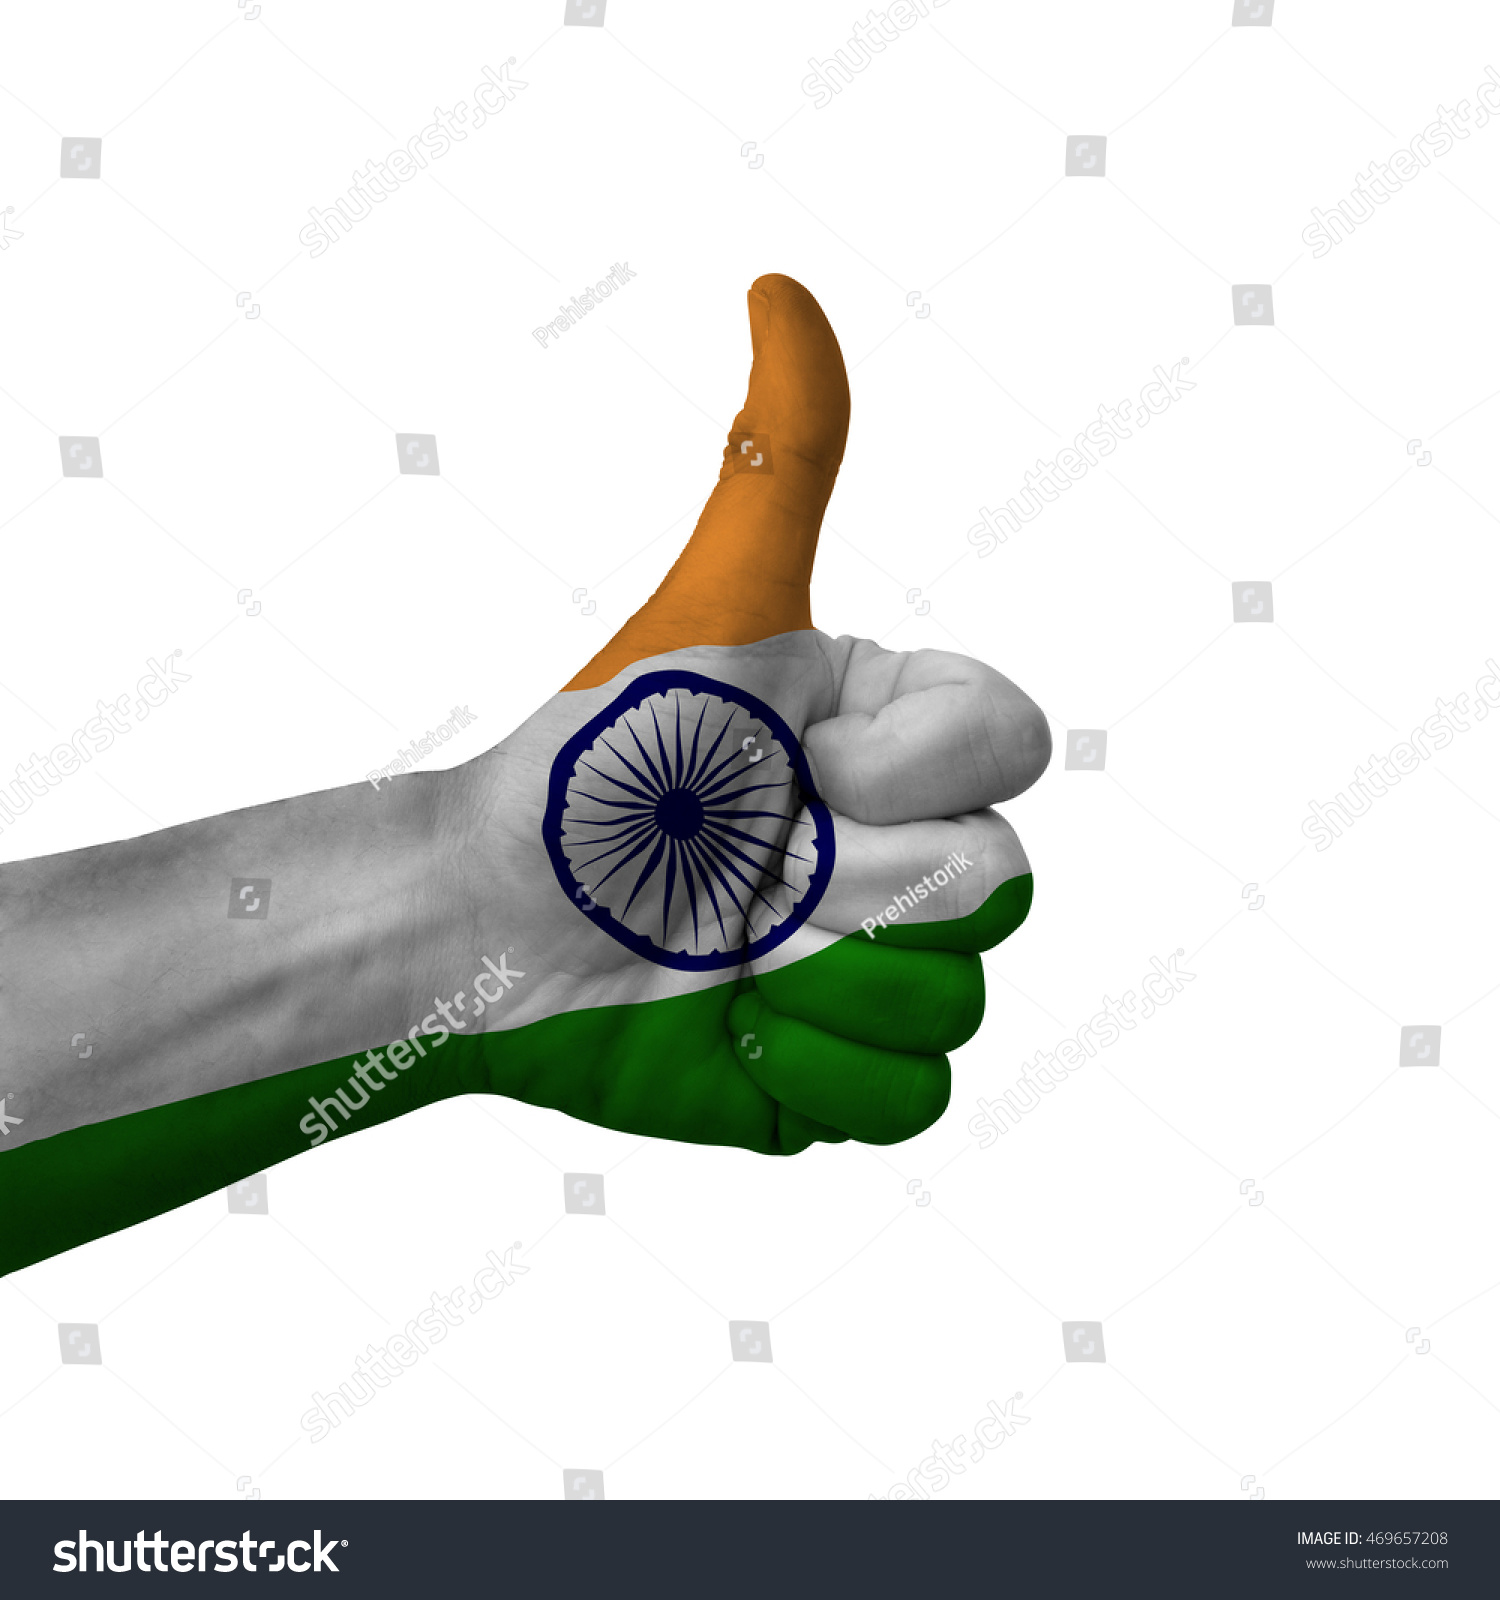 Royalty Free Hand Making Thumbs Up Sign India 469657208 Stock